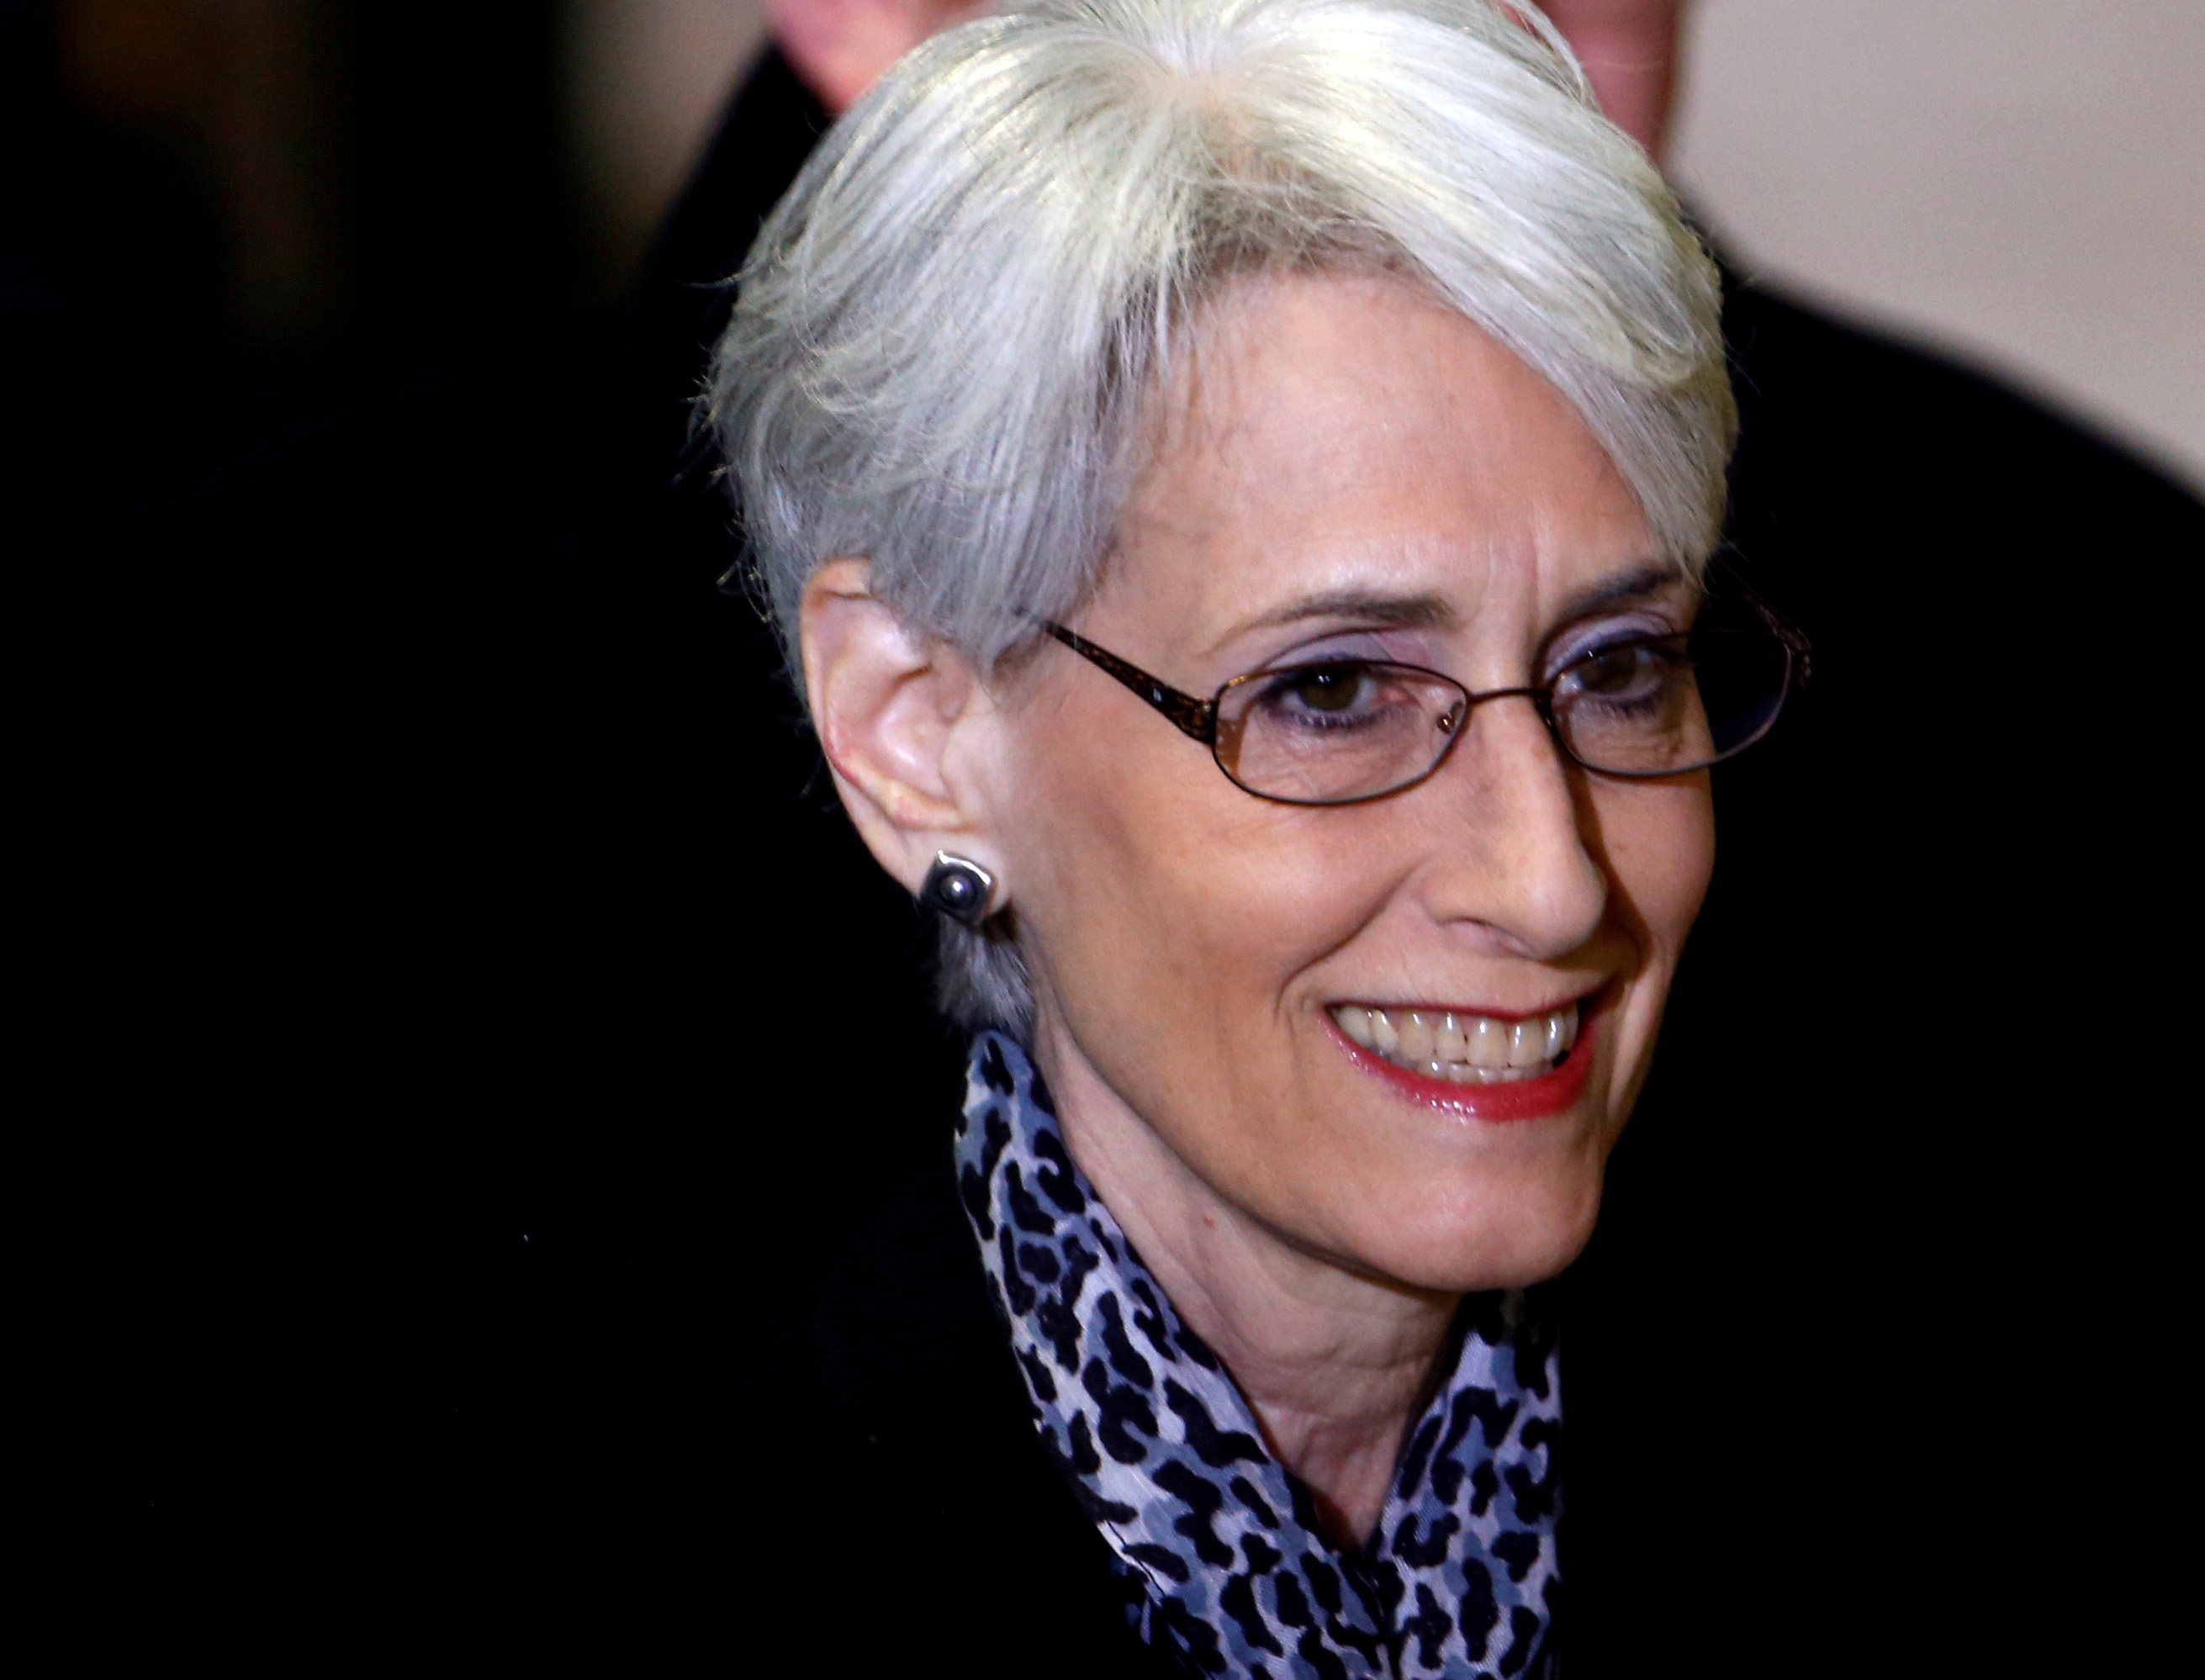 Wendy Sherman arrives for a meeting on Syria at the United Nations European headquarters in Geneva February 13, 2014.    REUTERS/Denis Balibouse/File Photo/File Photo